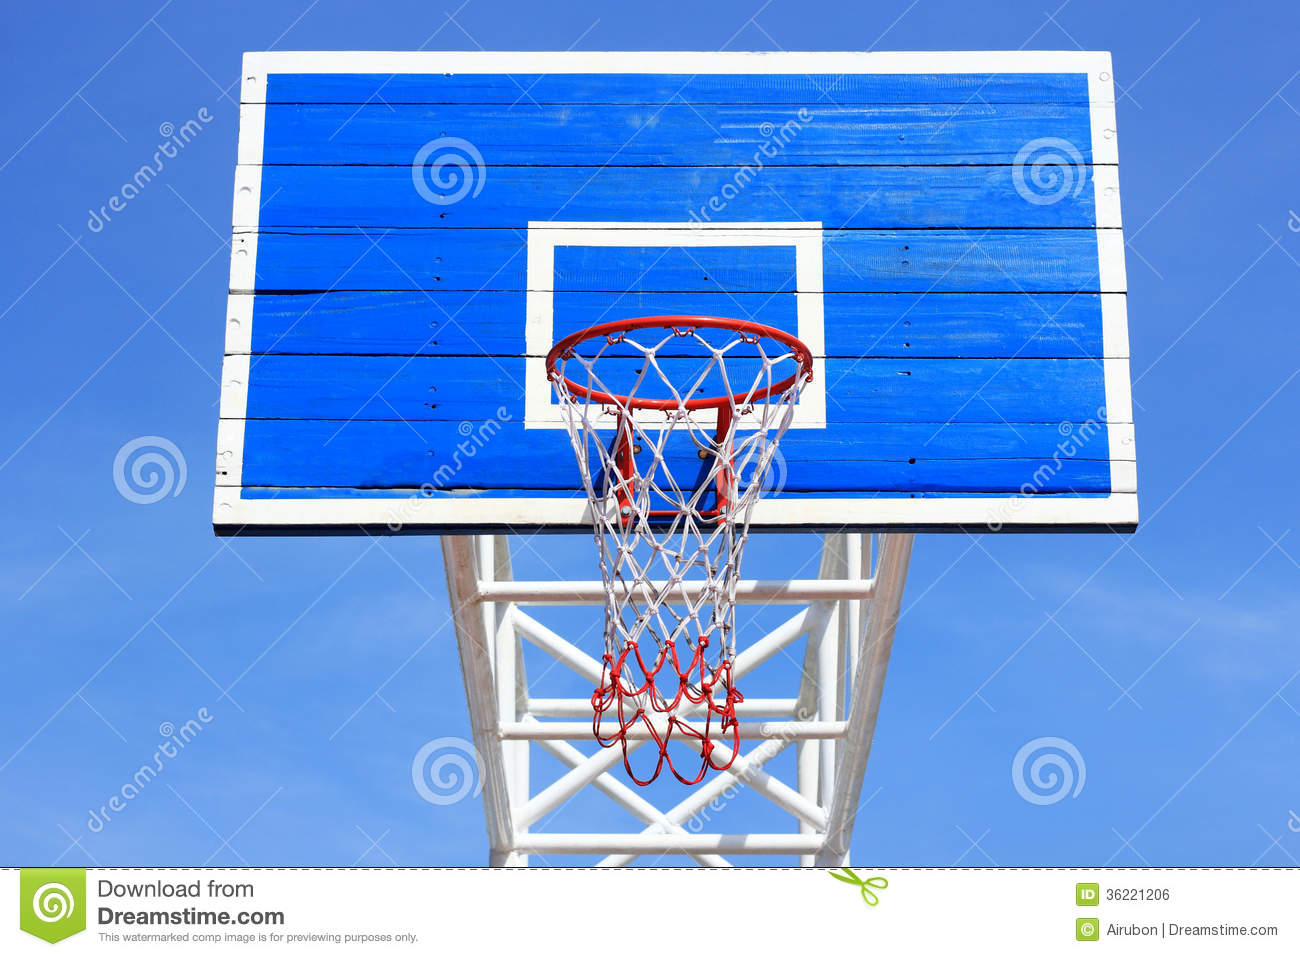 Basketball Board With Hoop Royalty Free Stock Image ...